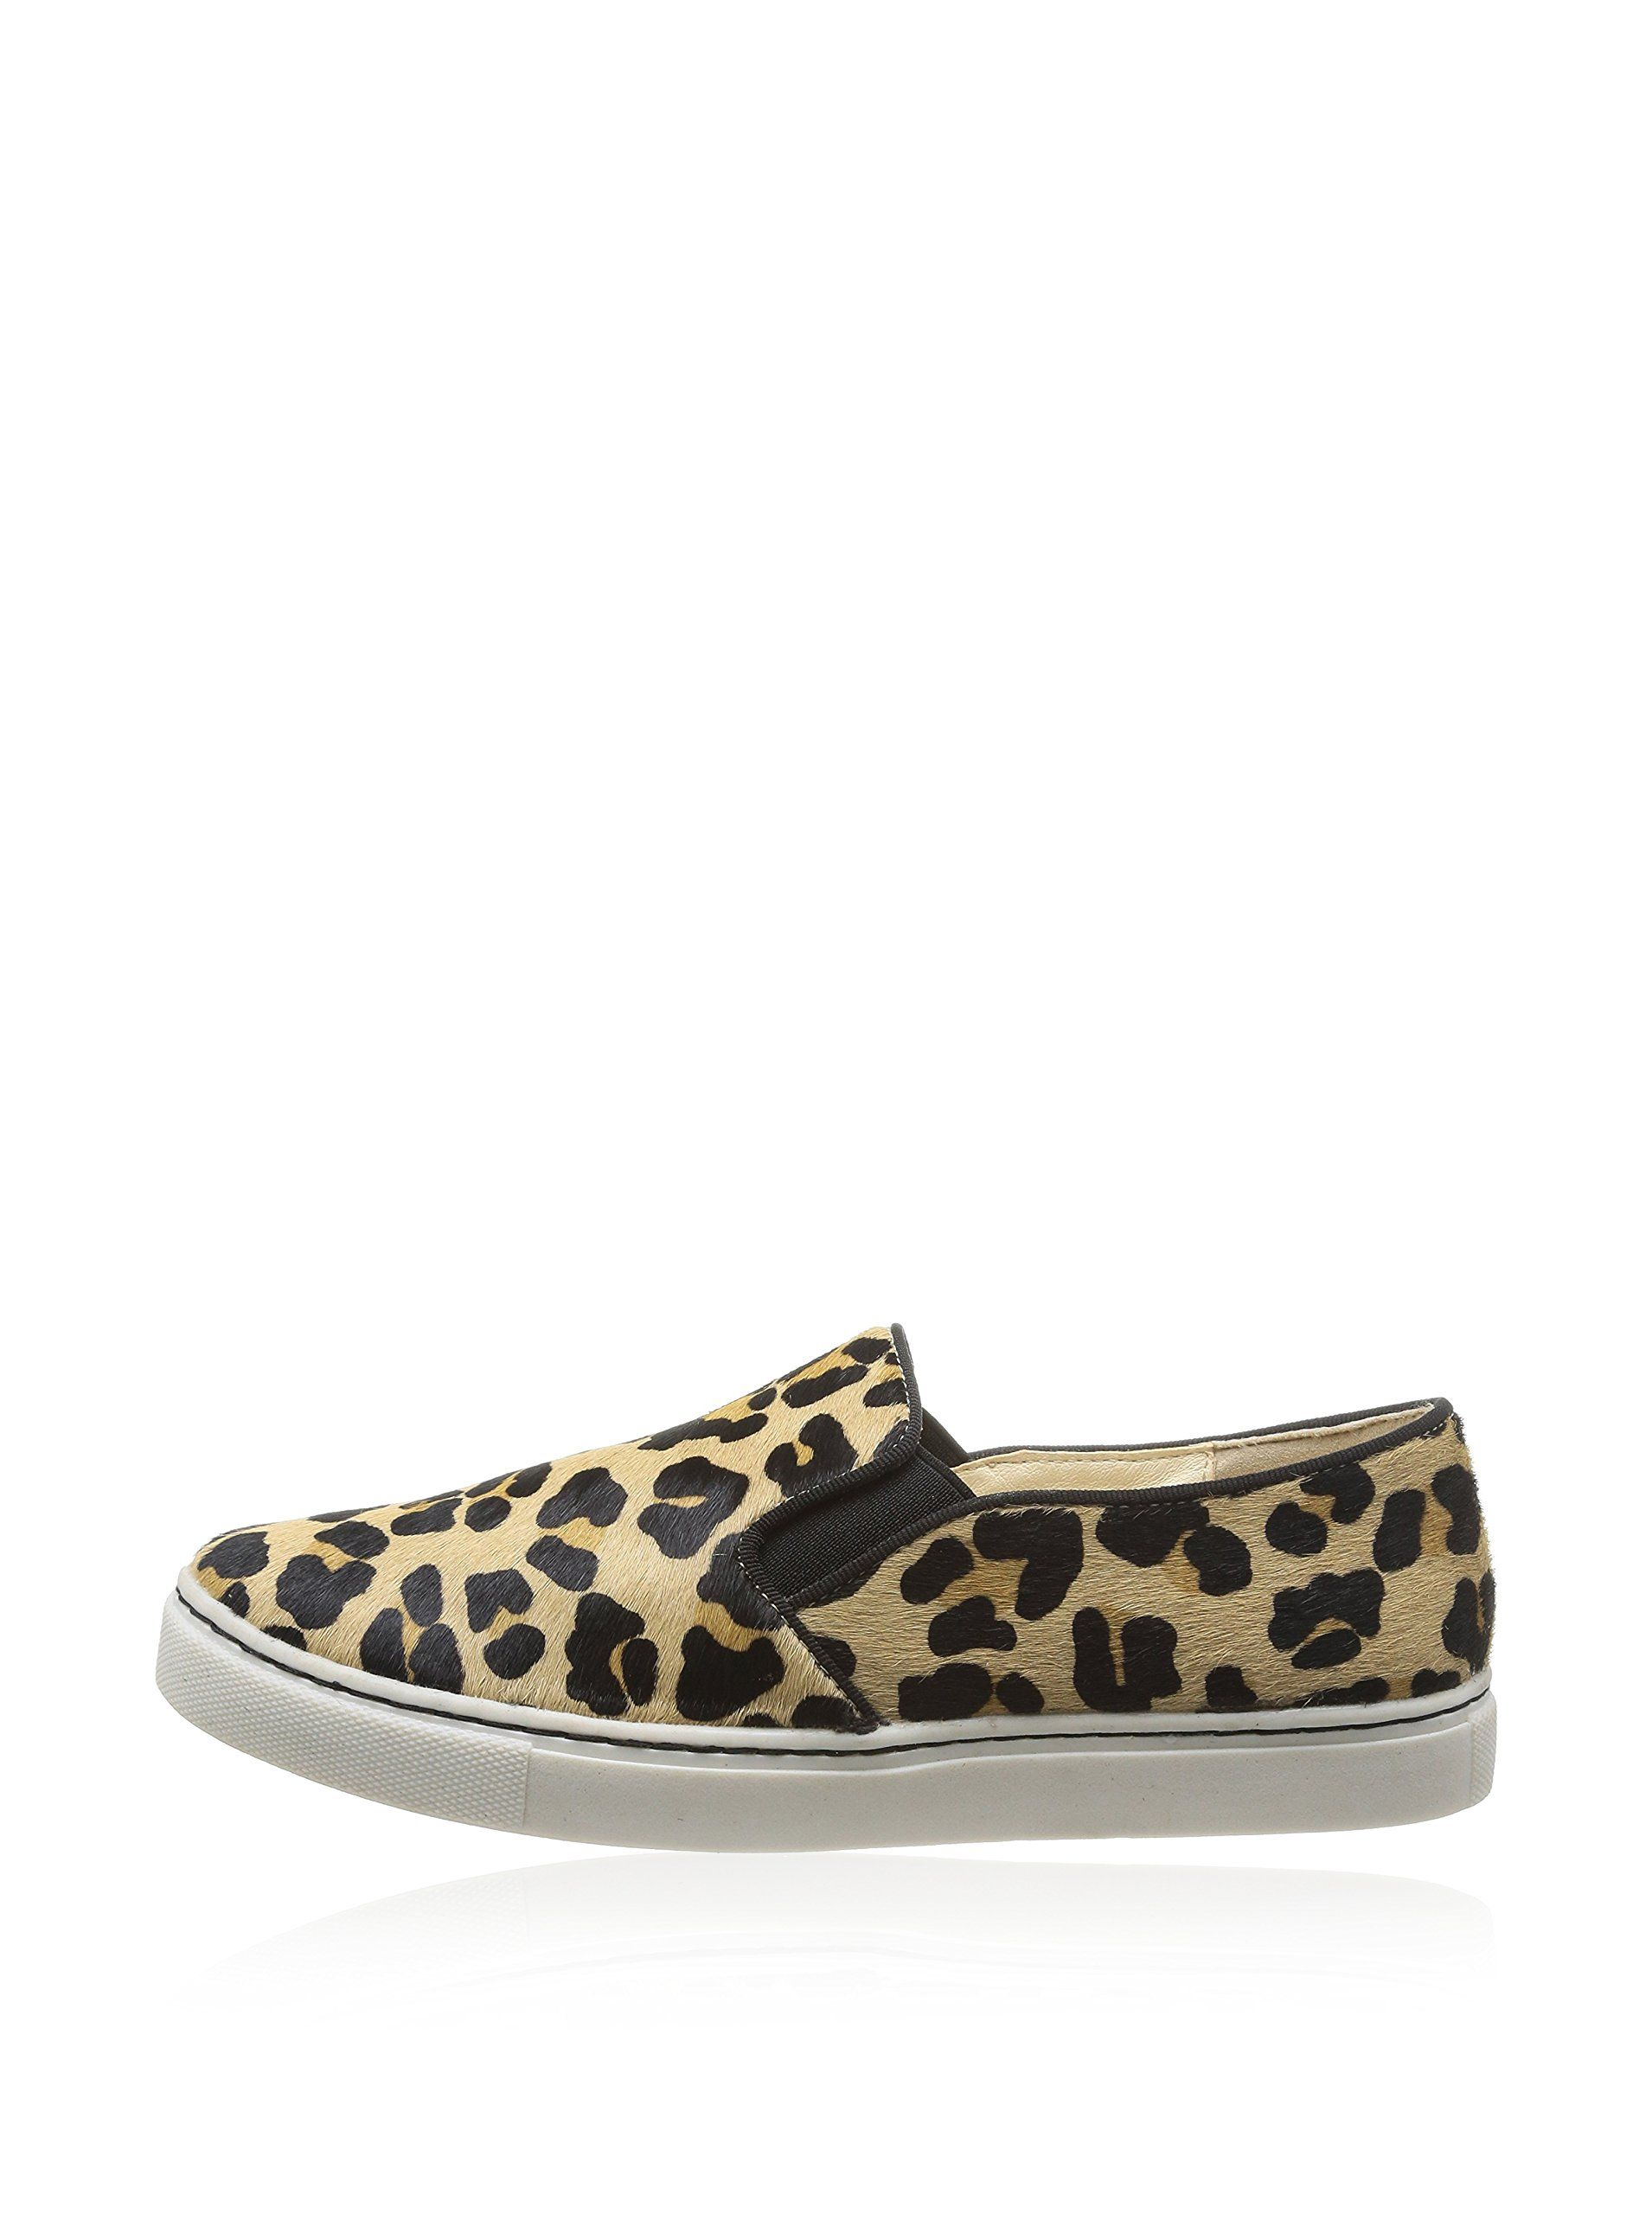 Buffalo Slip-On 326793 su Amazon BuyVIP